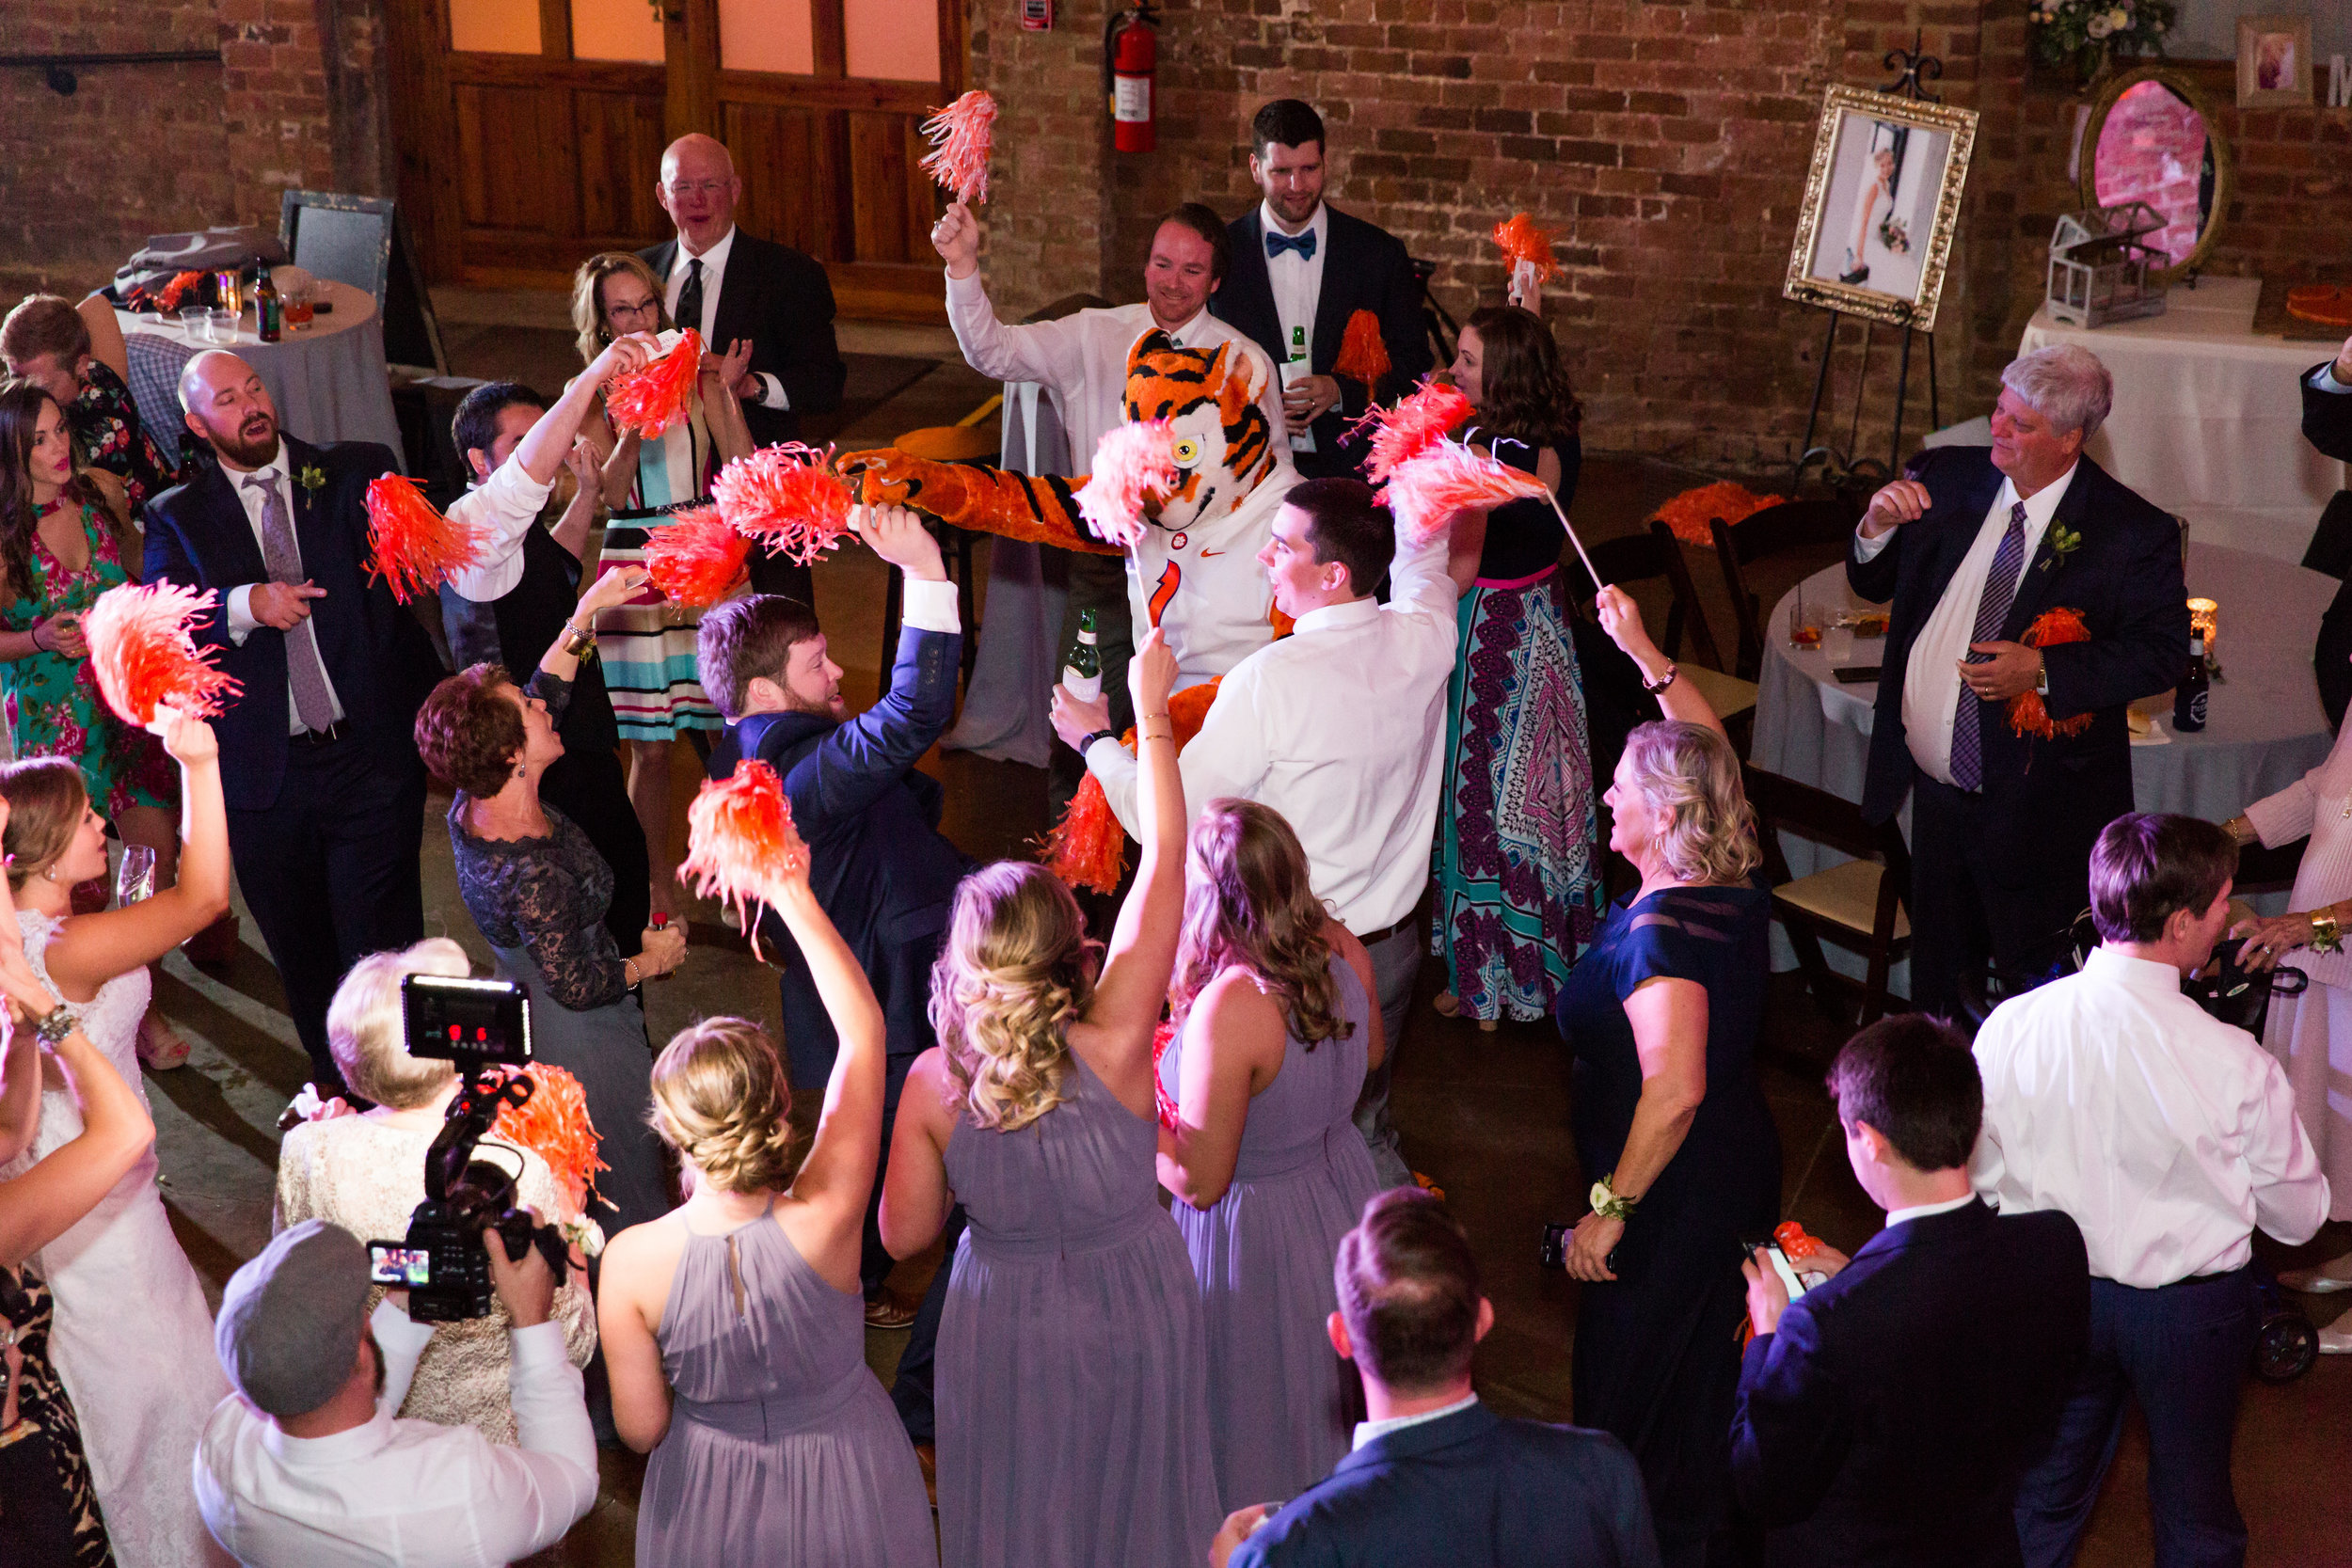 Wedding-DJ-Greenville-SC-Old Cigar-Warehouse-Megan-and-Ben111.jpg